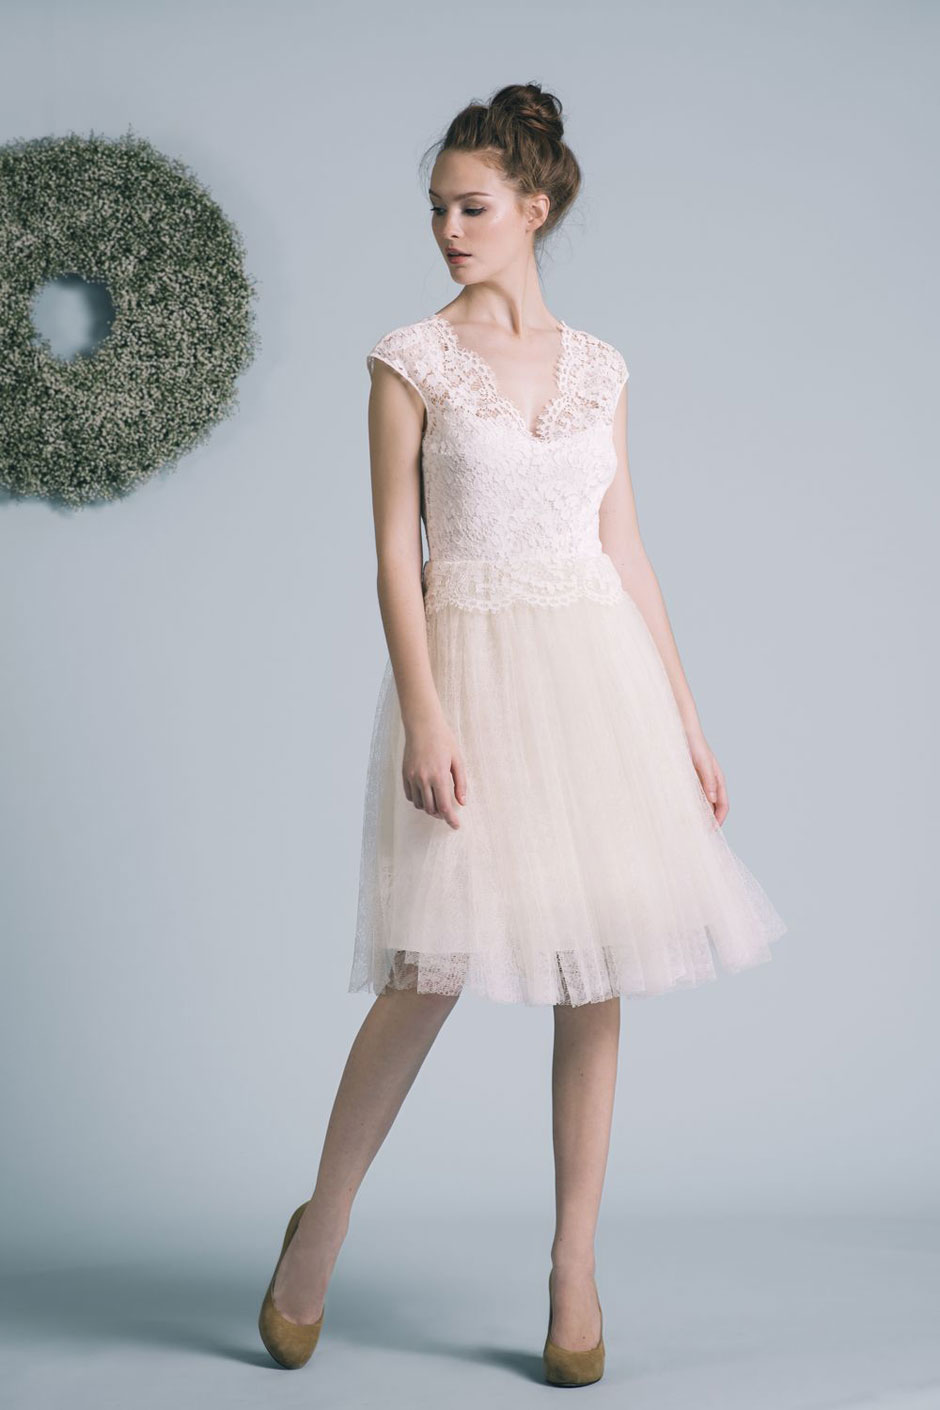 15 made in France short wedding dresses - Blog Mode en France